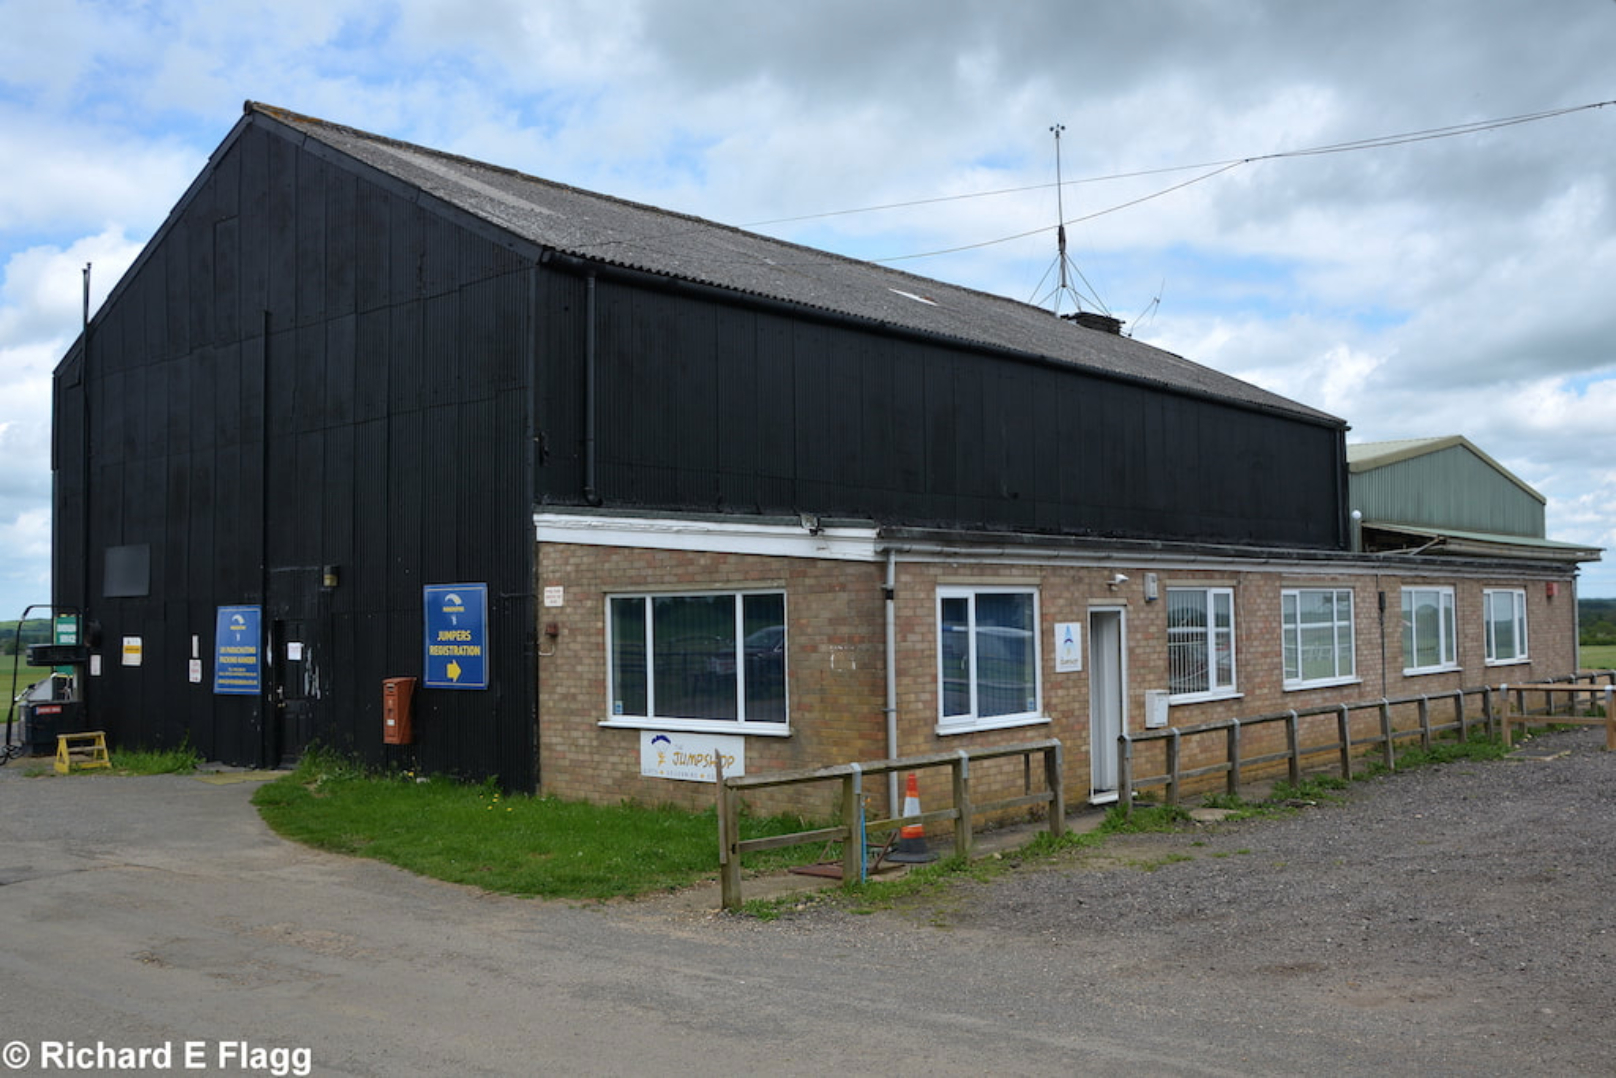 006Airfield Hangar, Offices & Control Room 2 - 23 May 2017.png